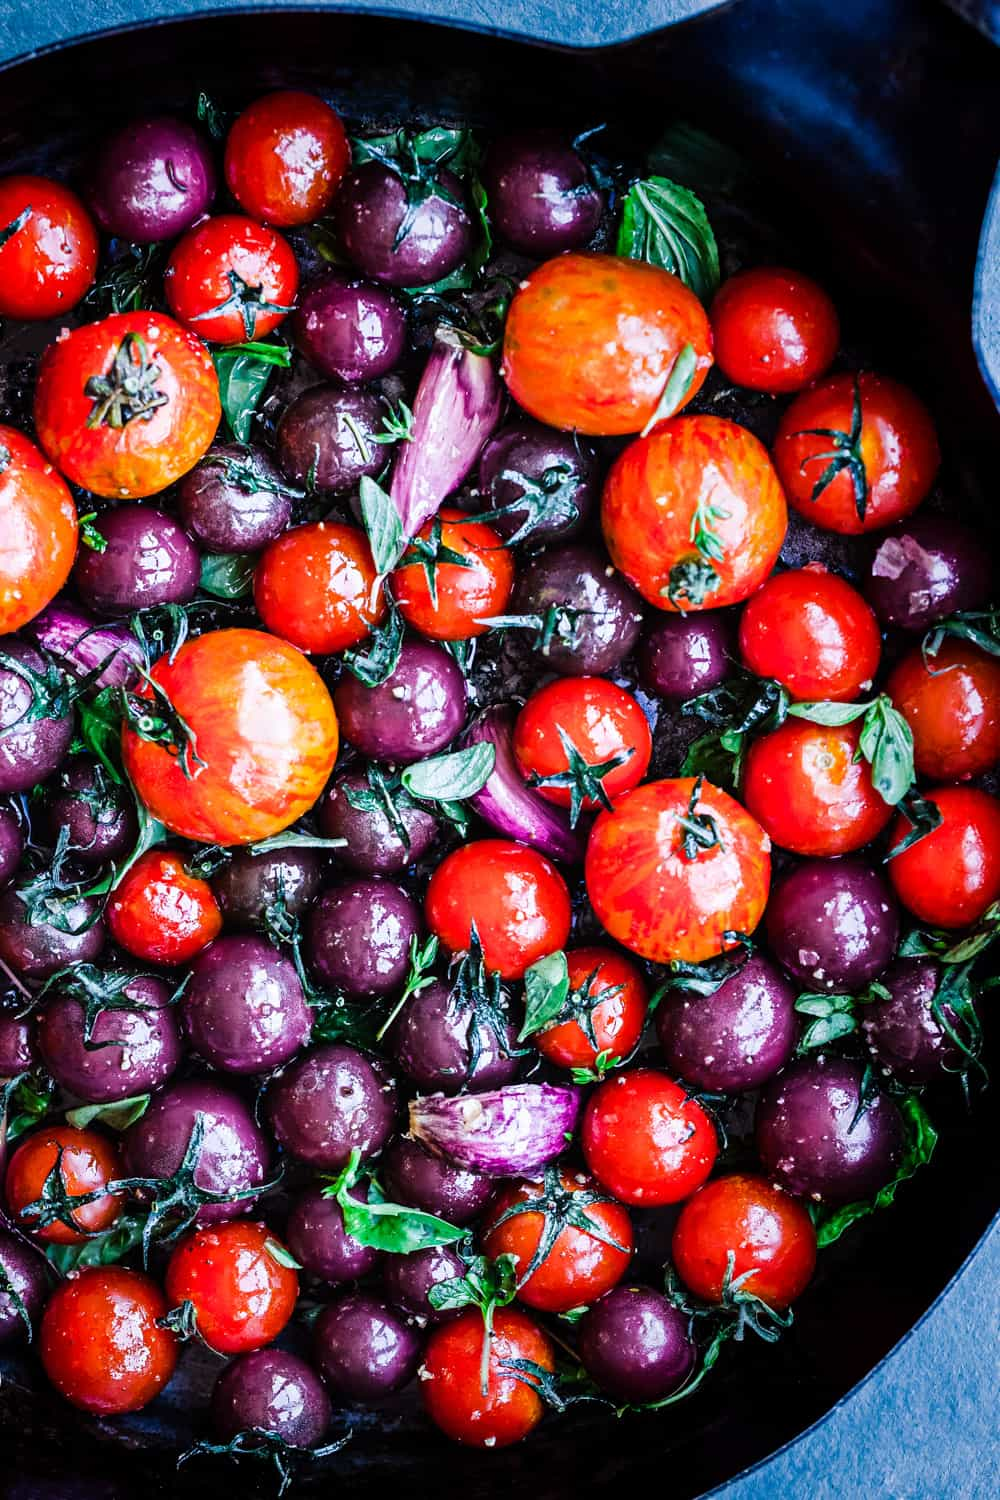 Different shades of red and purple cherry tomatoes in a pan with garlic and basil, overhead shot.